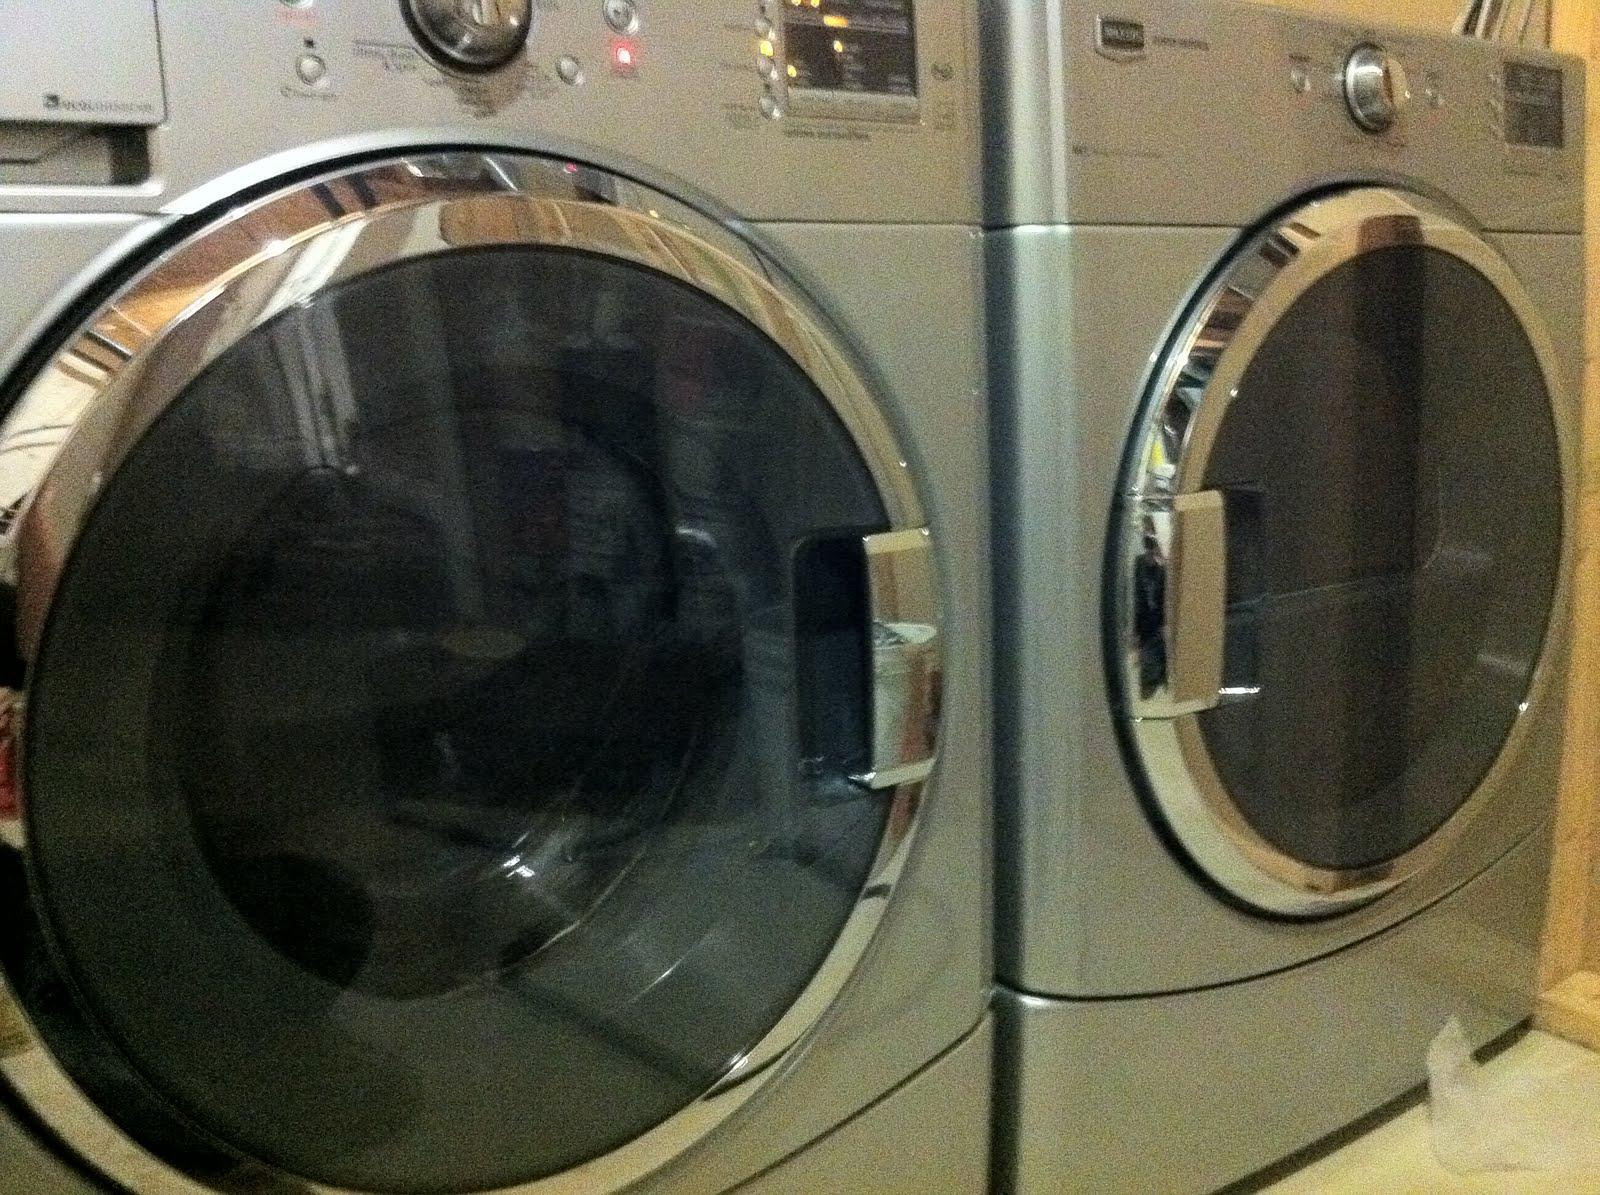 New Washer And Dryer Michael S Blog New Washer Dryer Blood Sweat And Tears